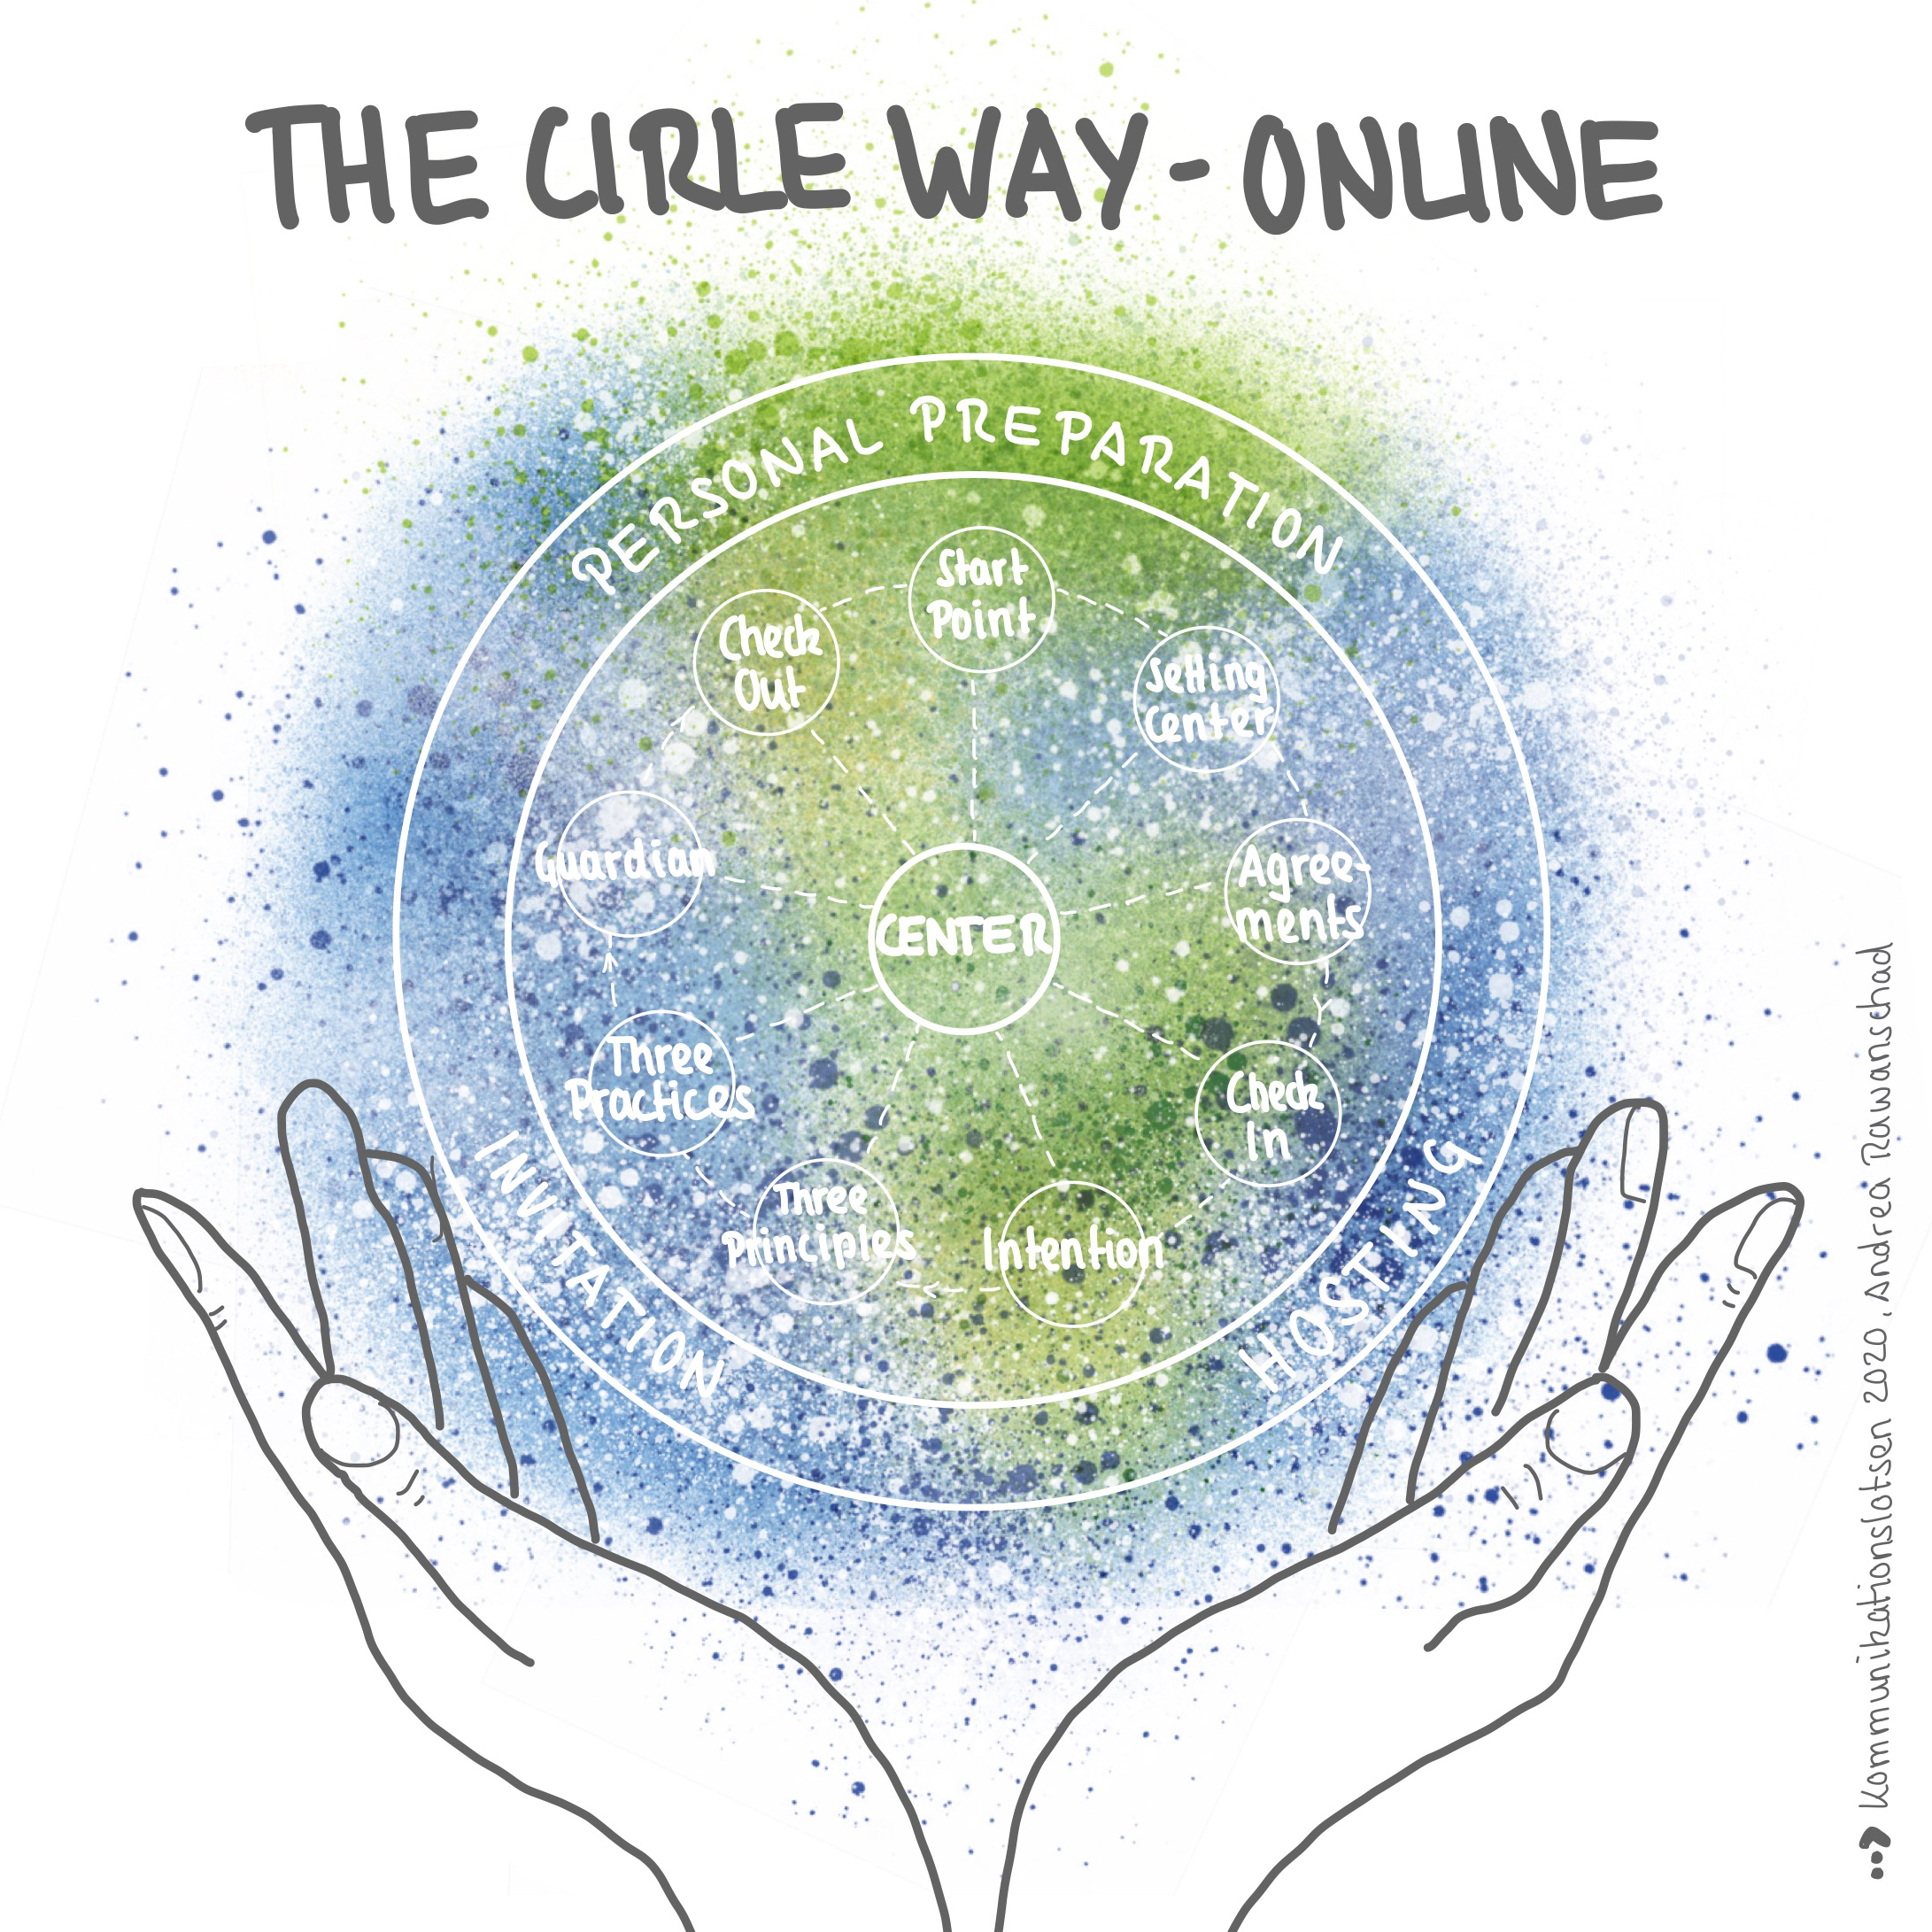 The Circle Way - online - 1